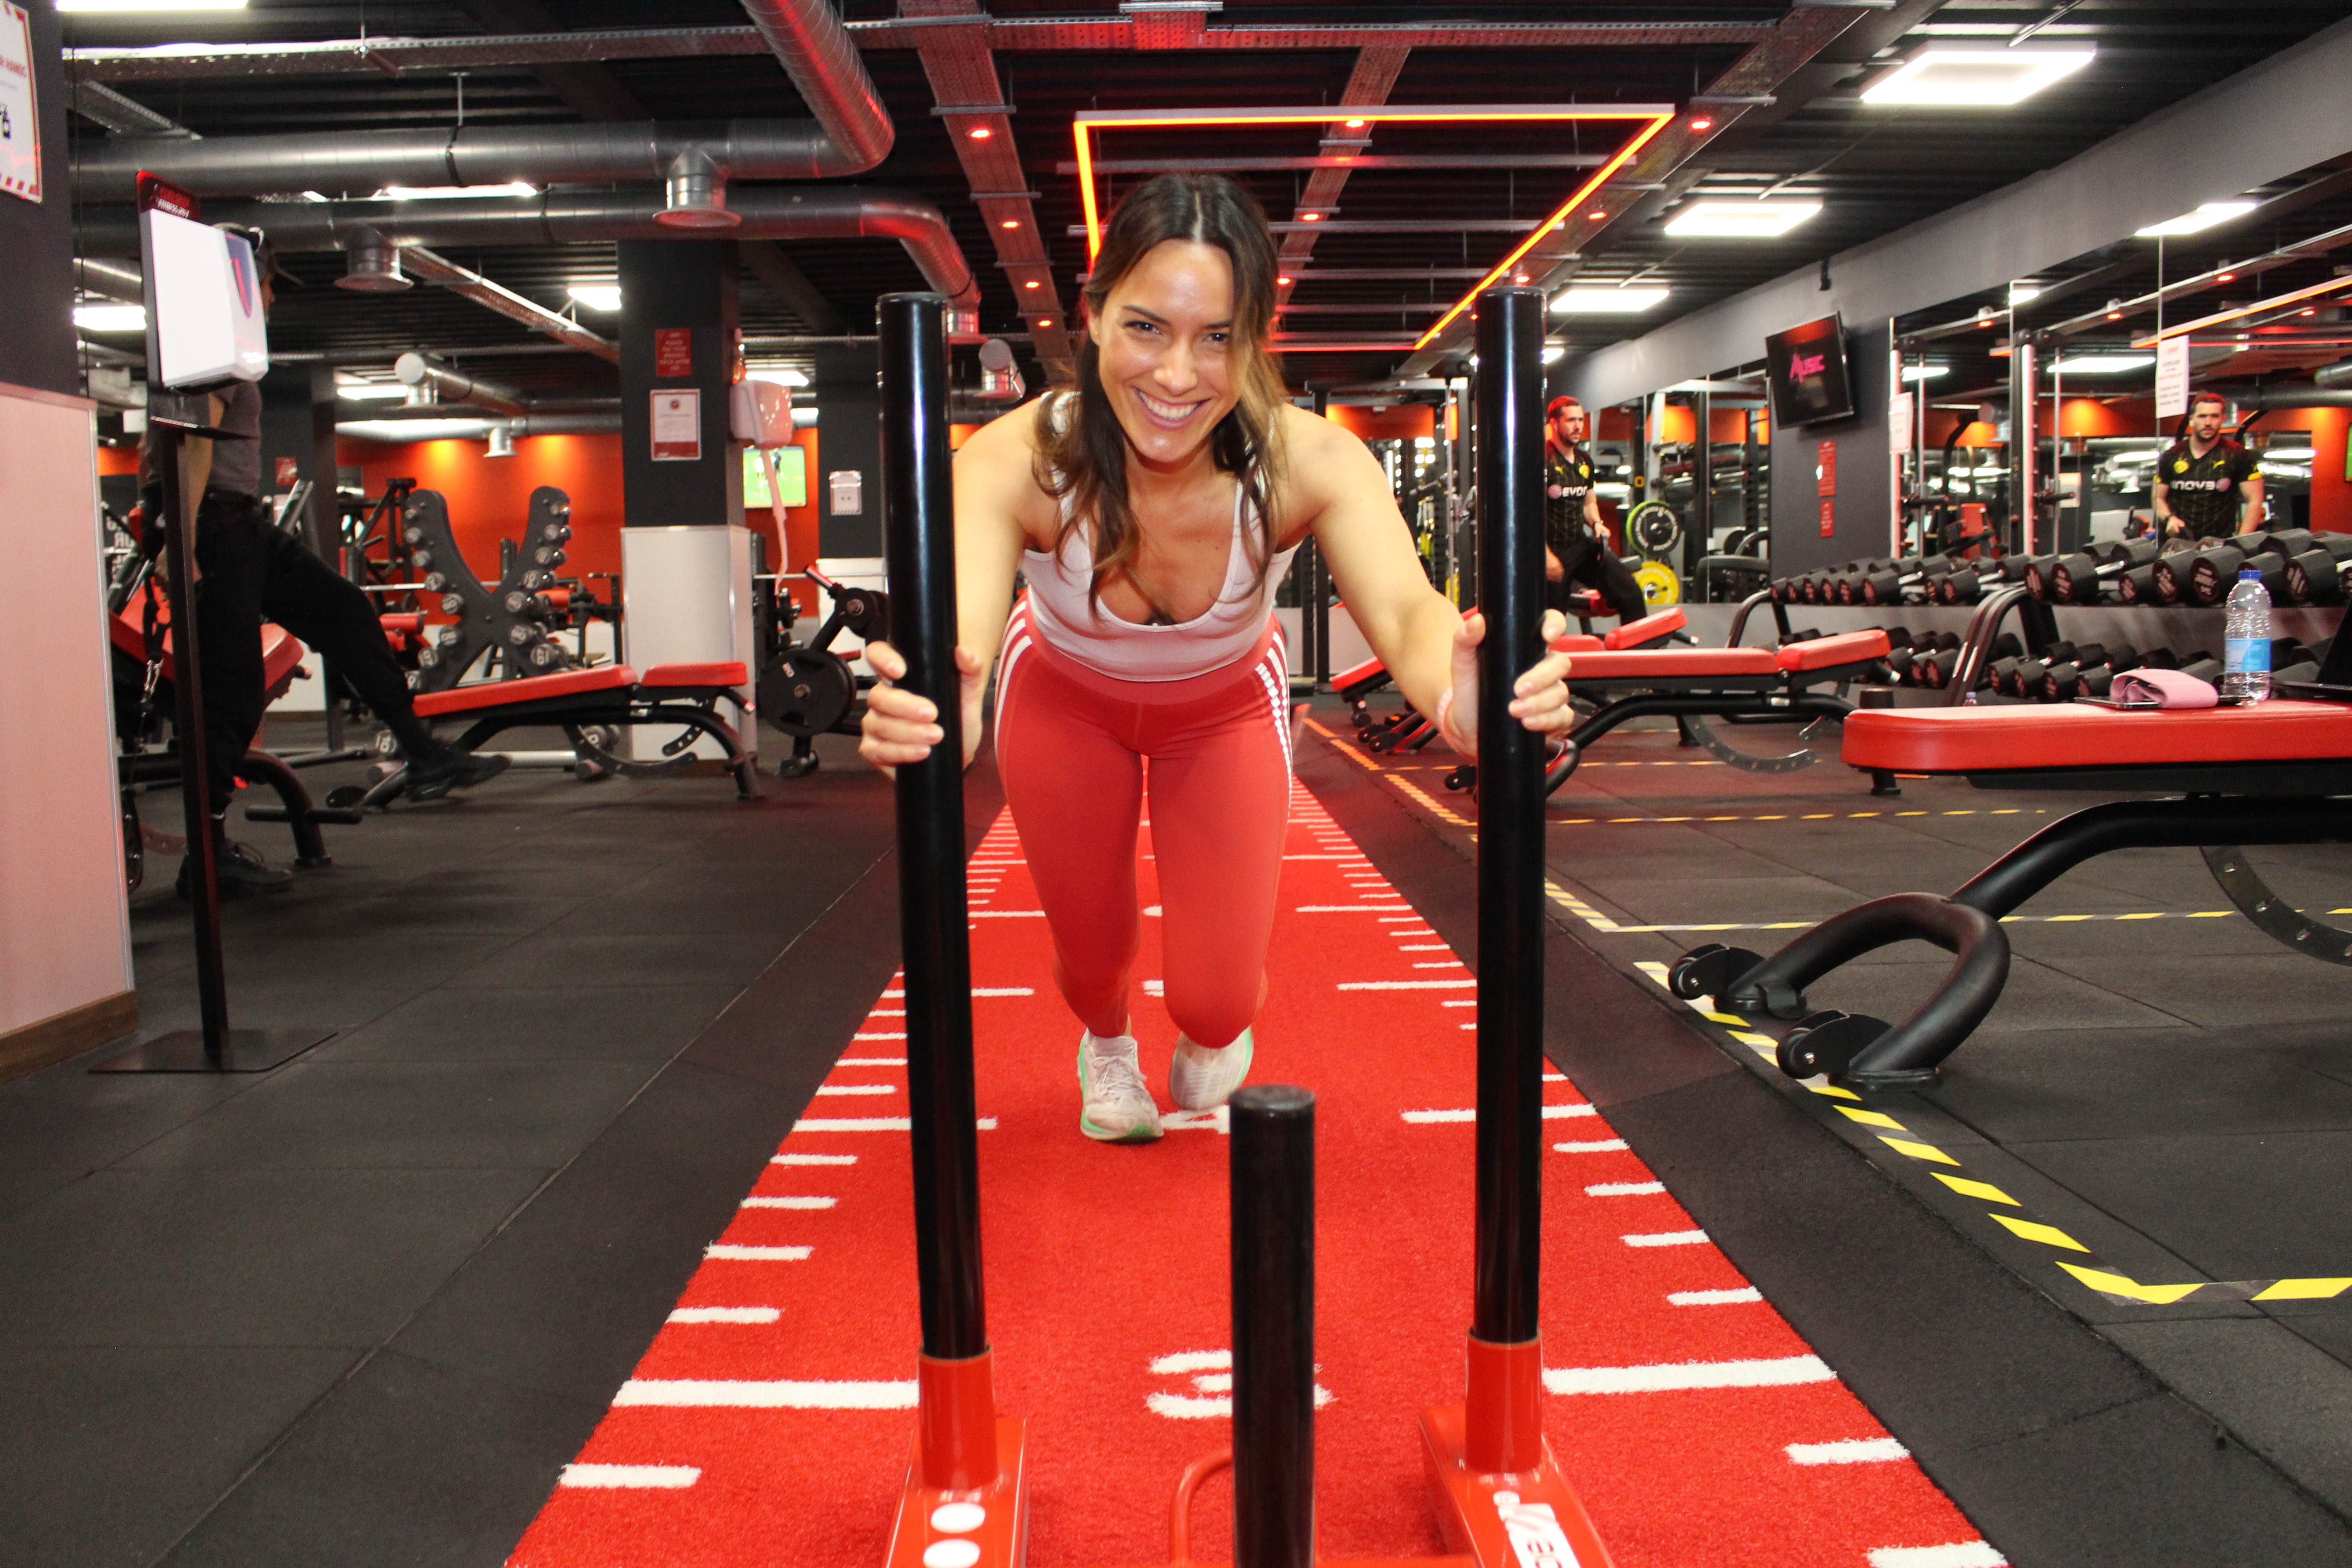 Snap Fitness red woman